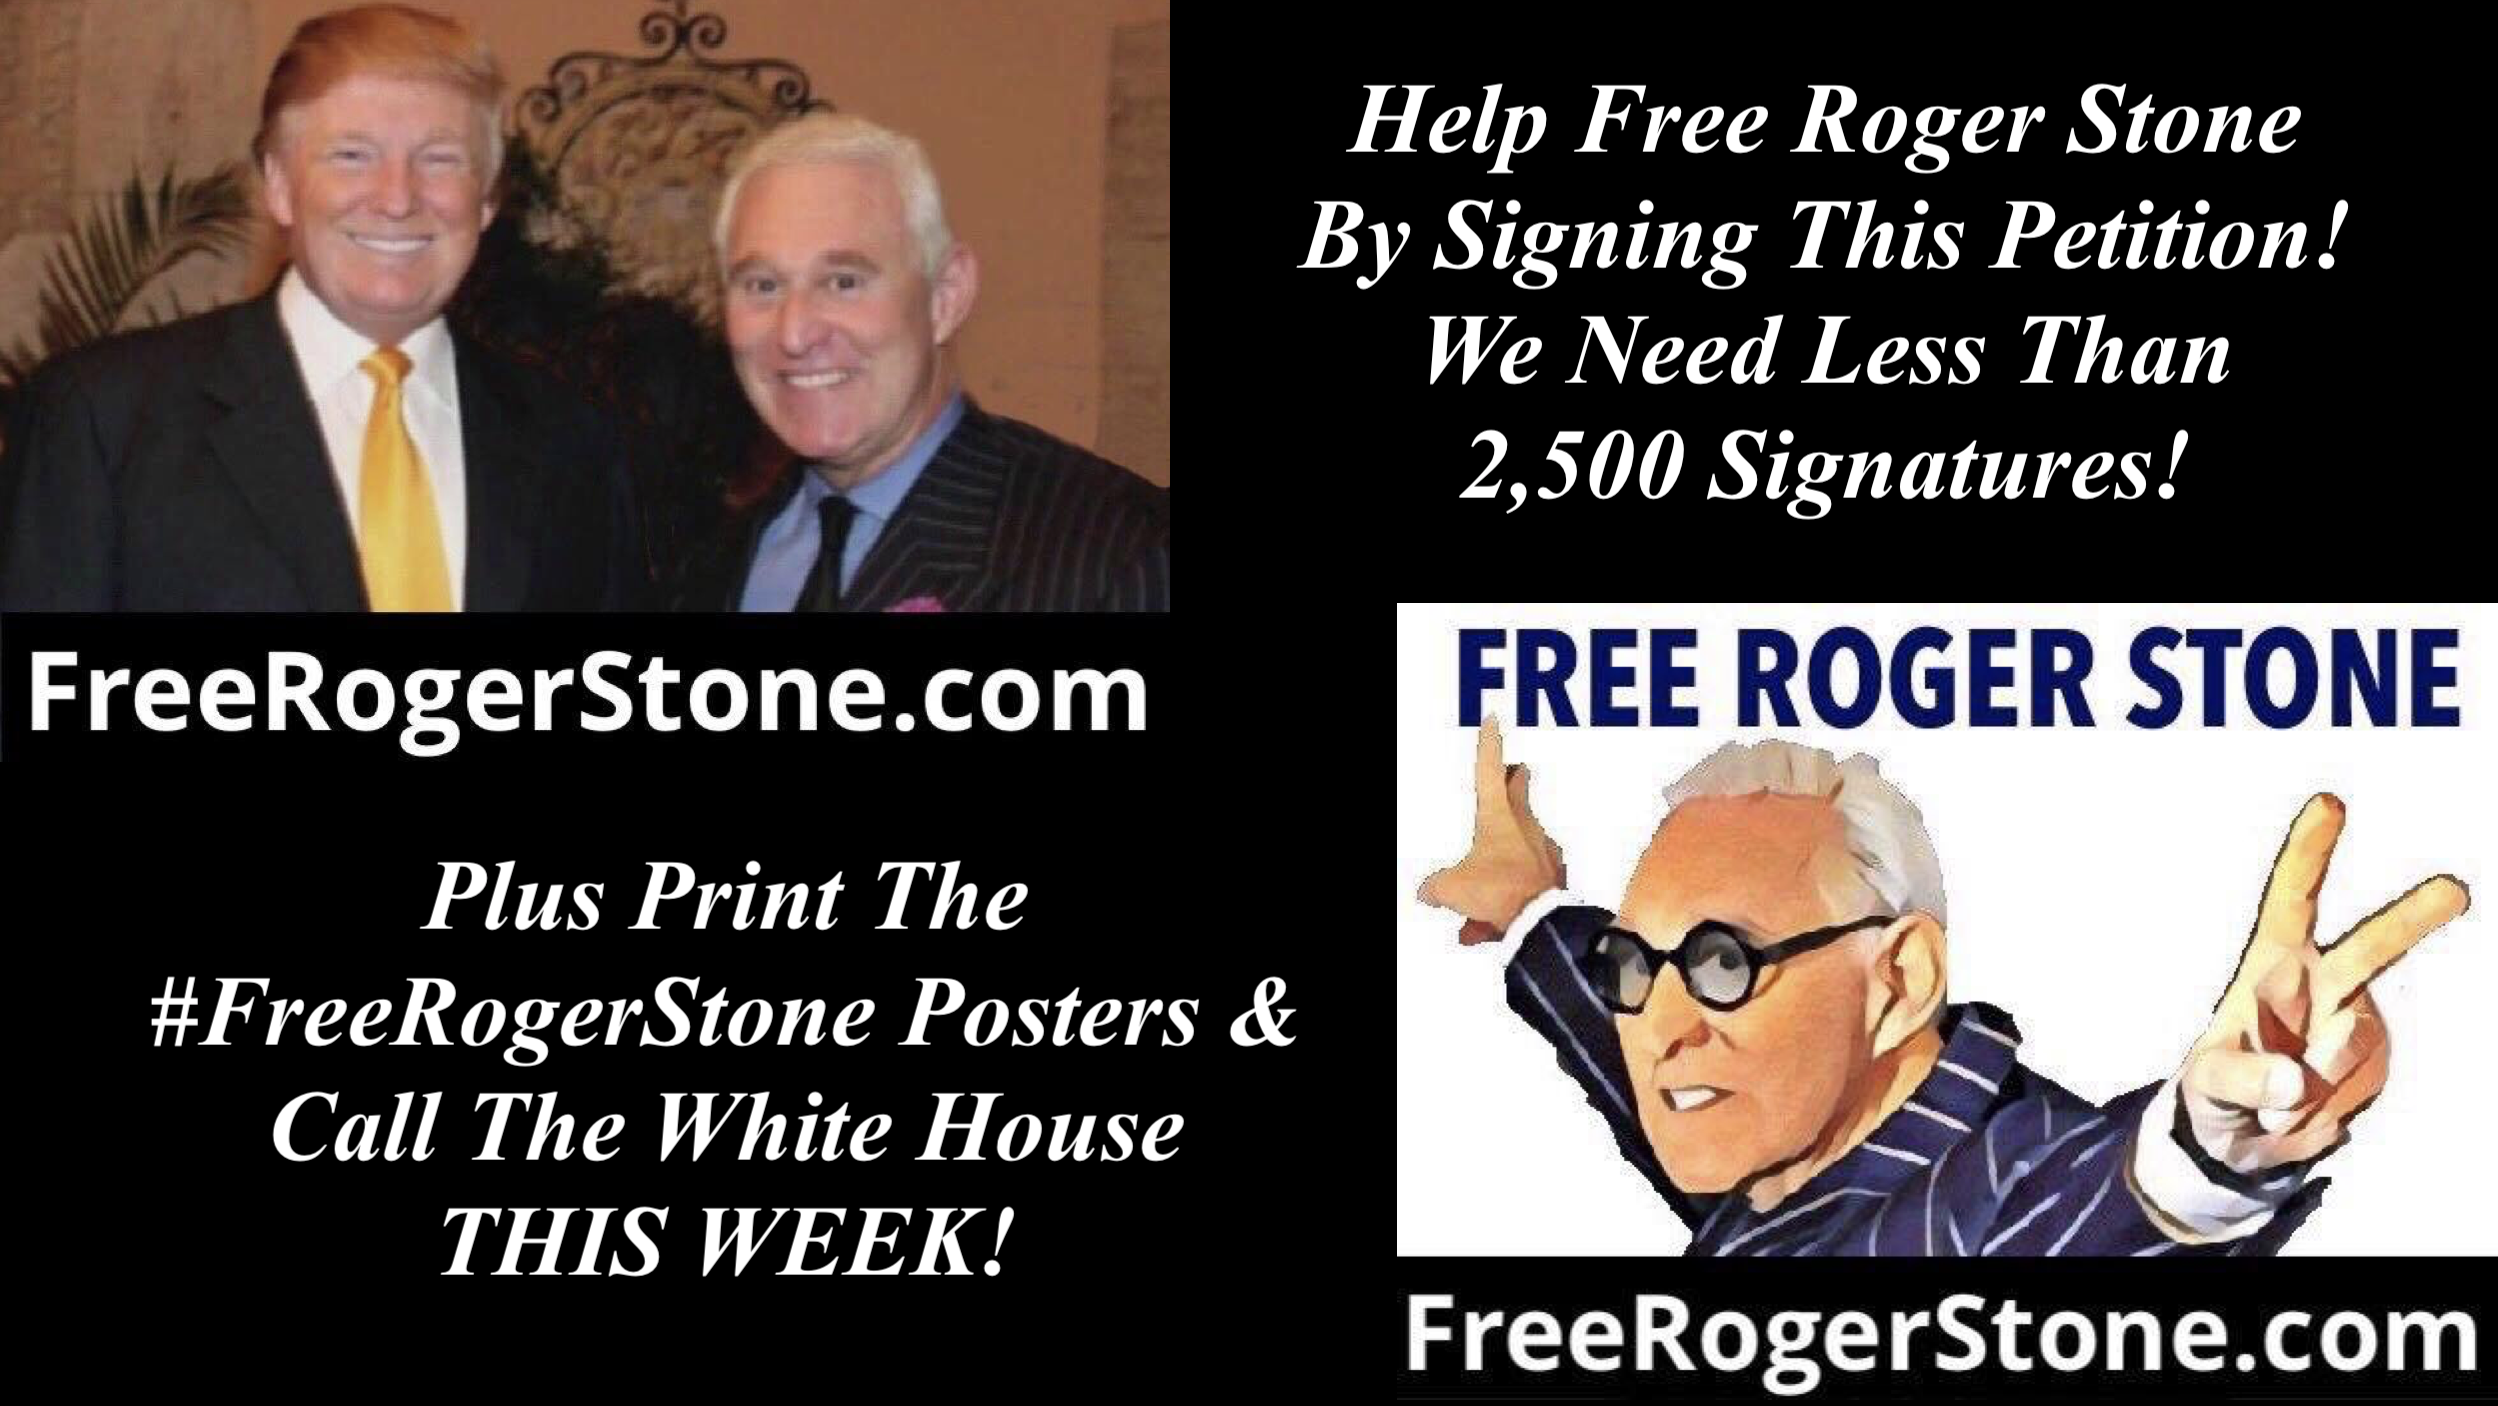 Sign Petition and Free Roger Stone 12 30 2019